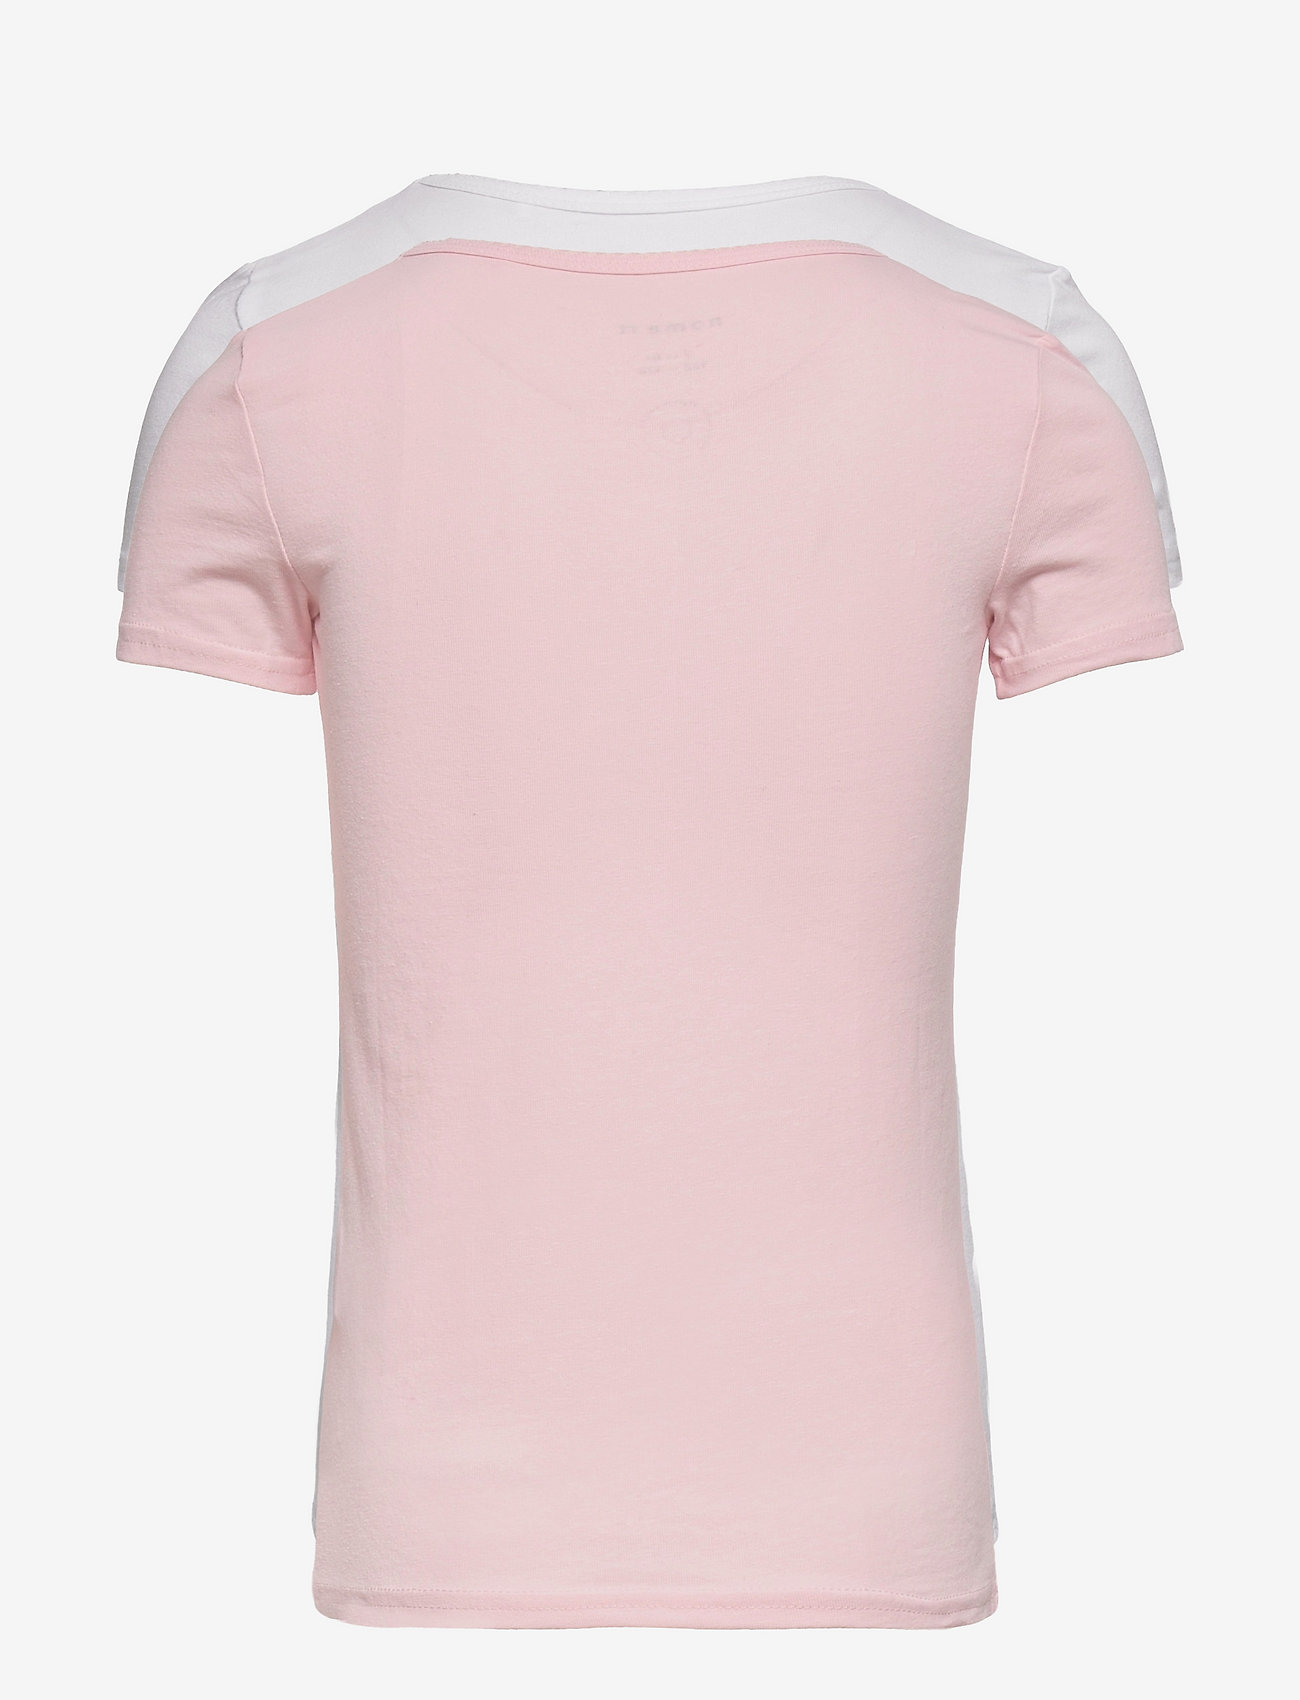 name it - NKFTOP SS SLIM 2P BARELY PINK - t-shirts - barely pink - 1